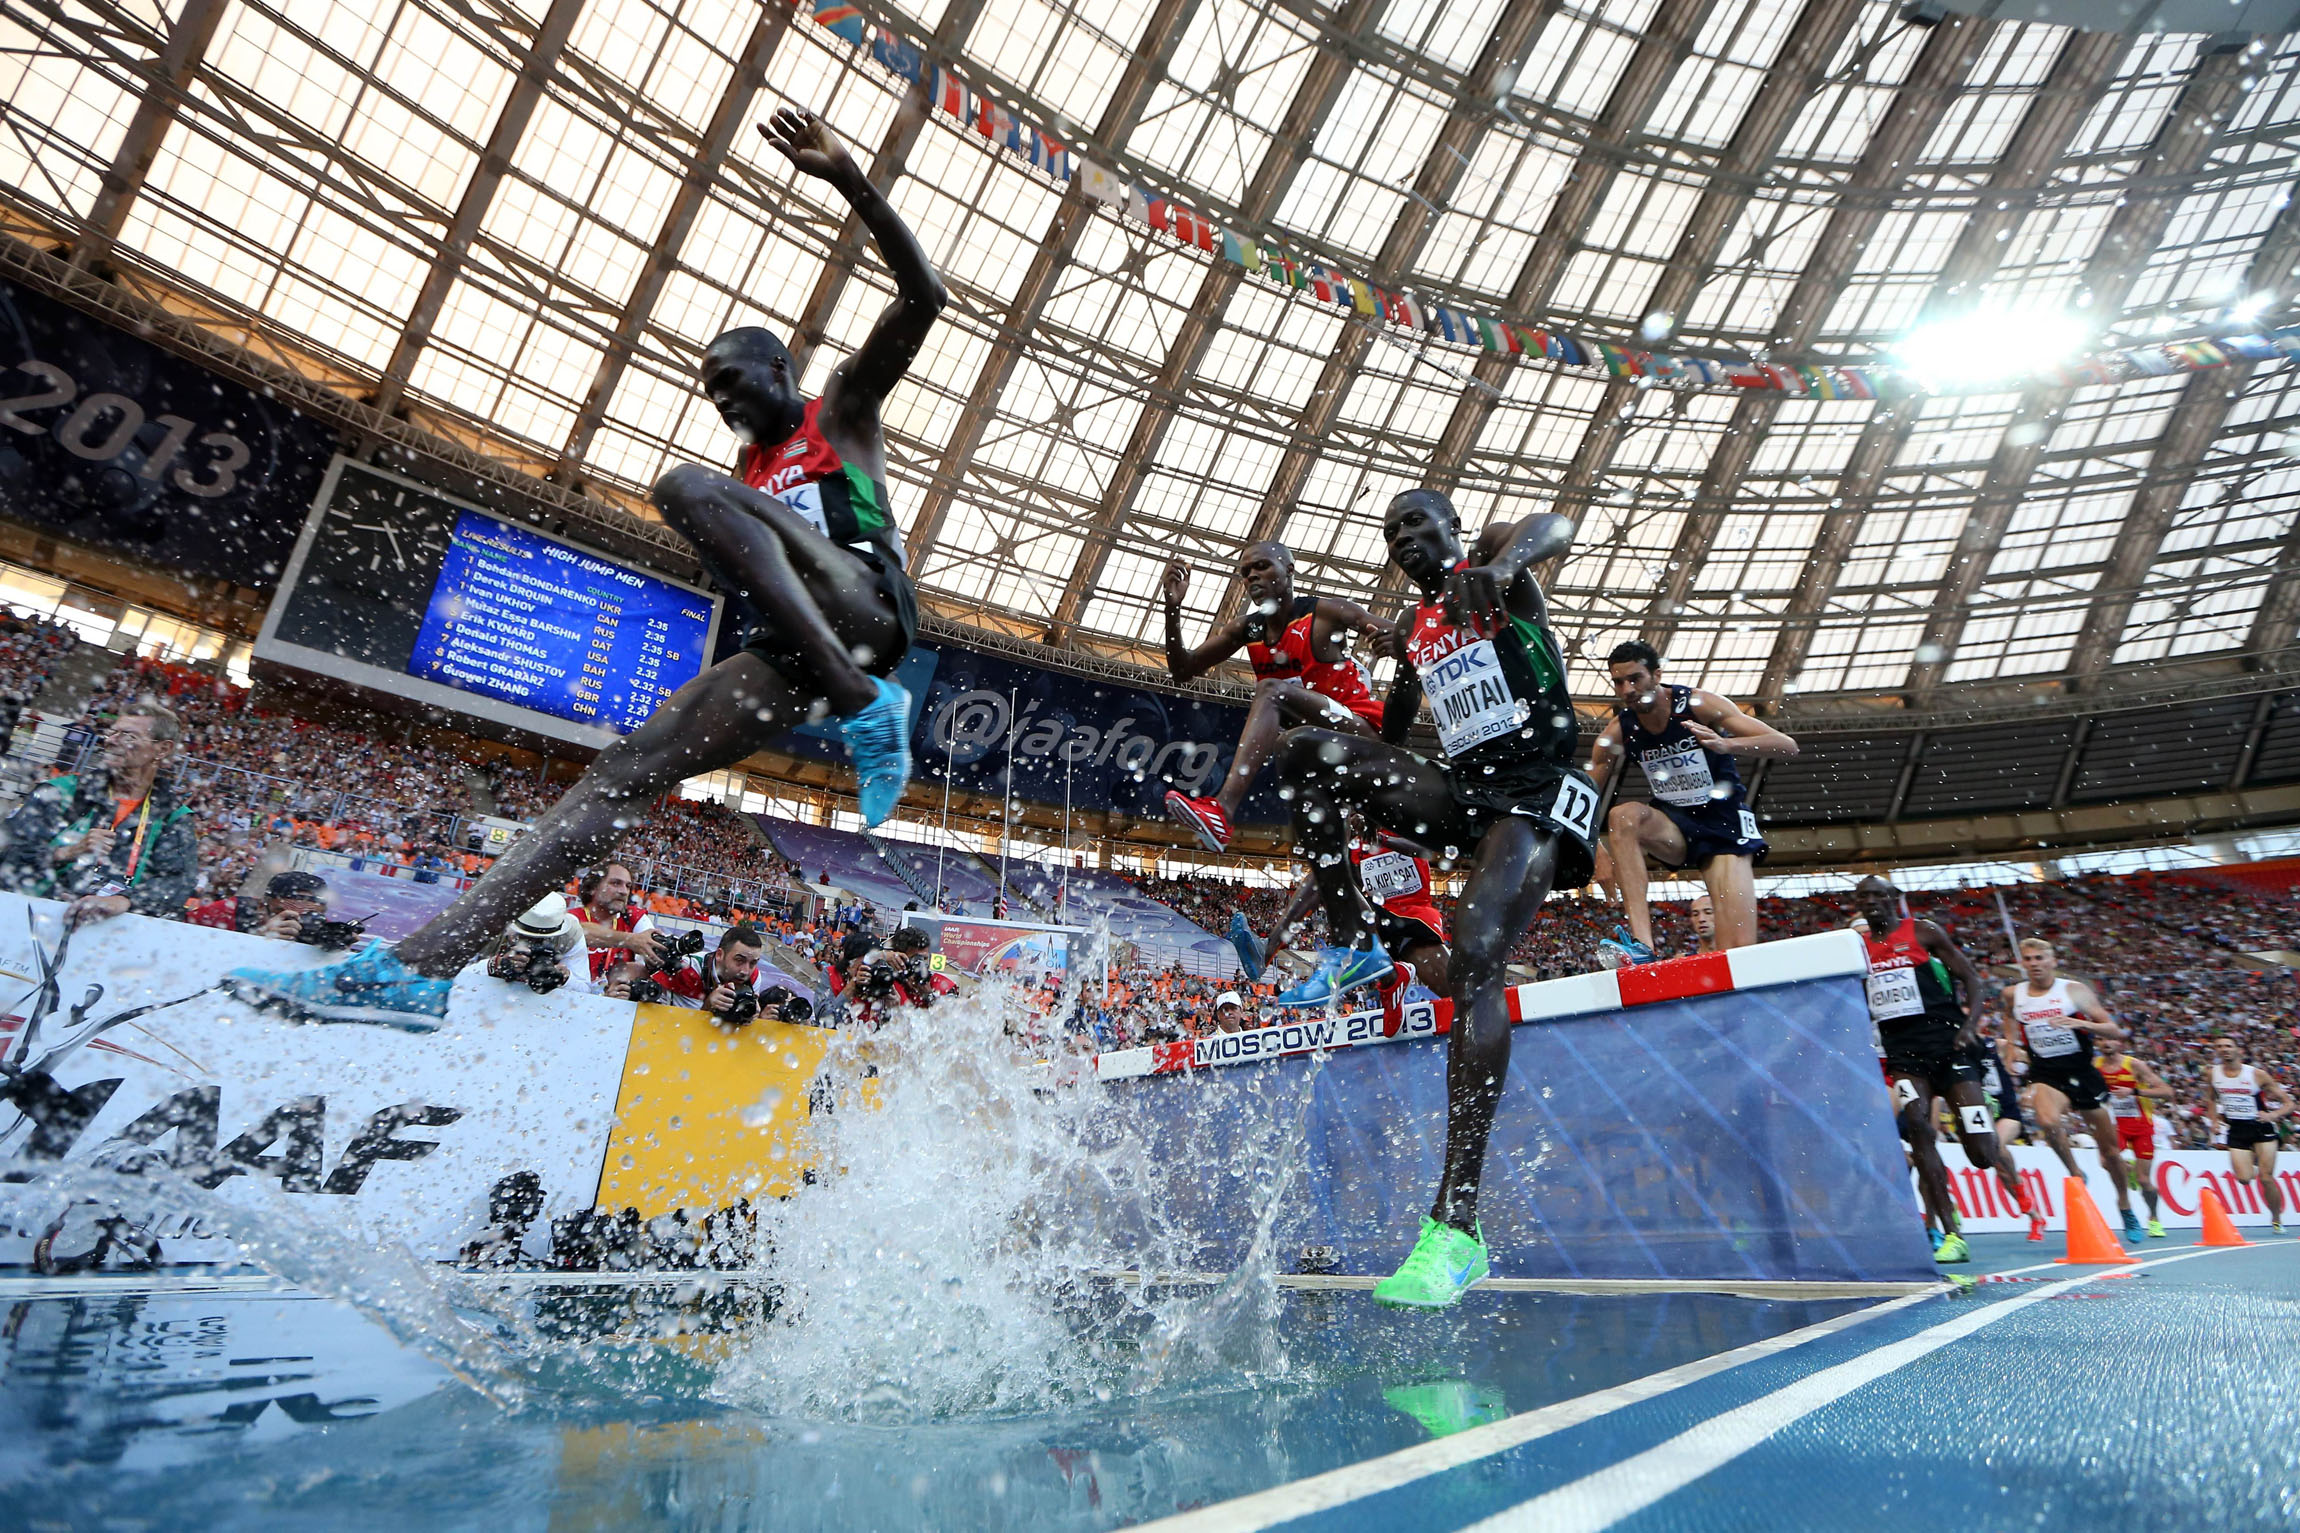 Kenya 39 S Kemboi Reigns Again With Stirring Steeplechase Win